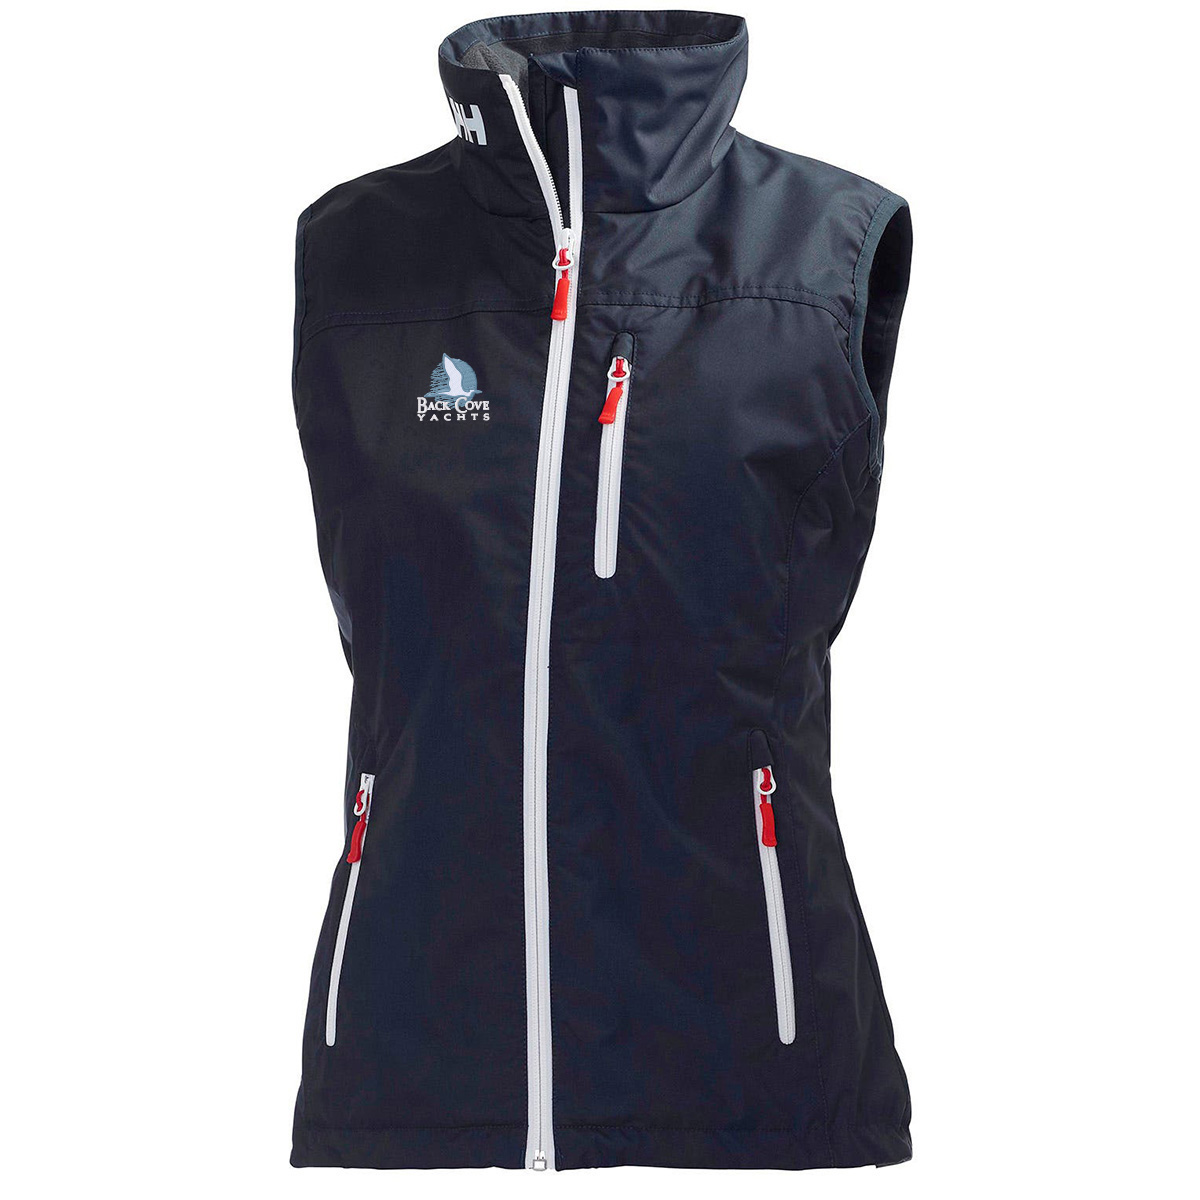 Back Cove Yachts - Helly Hansen Women's Crew Vest